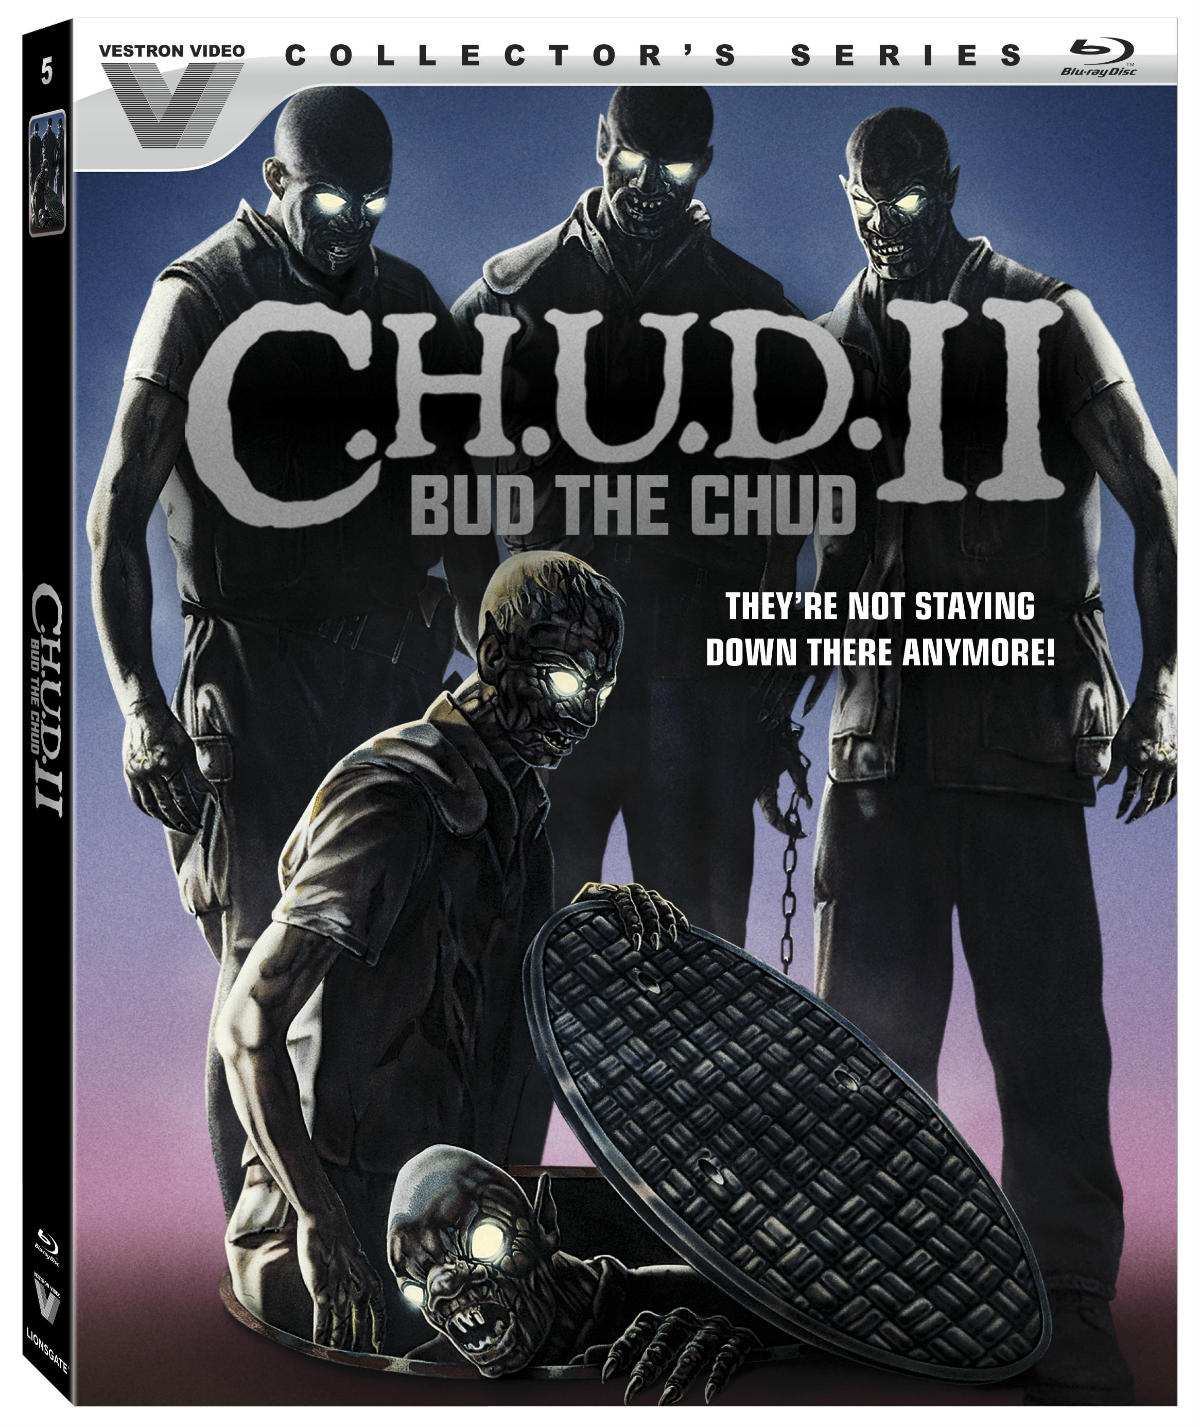 C.H.U.D. II Blu-ray Cover Art